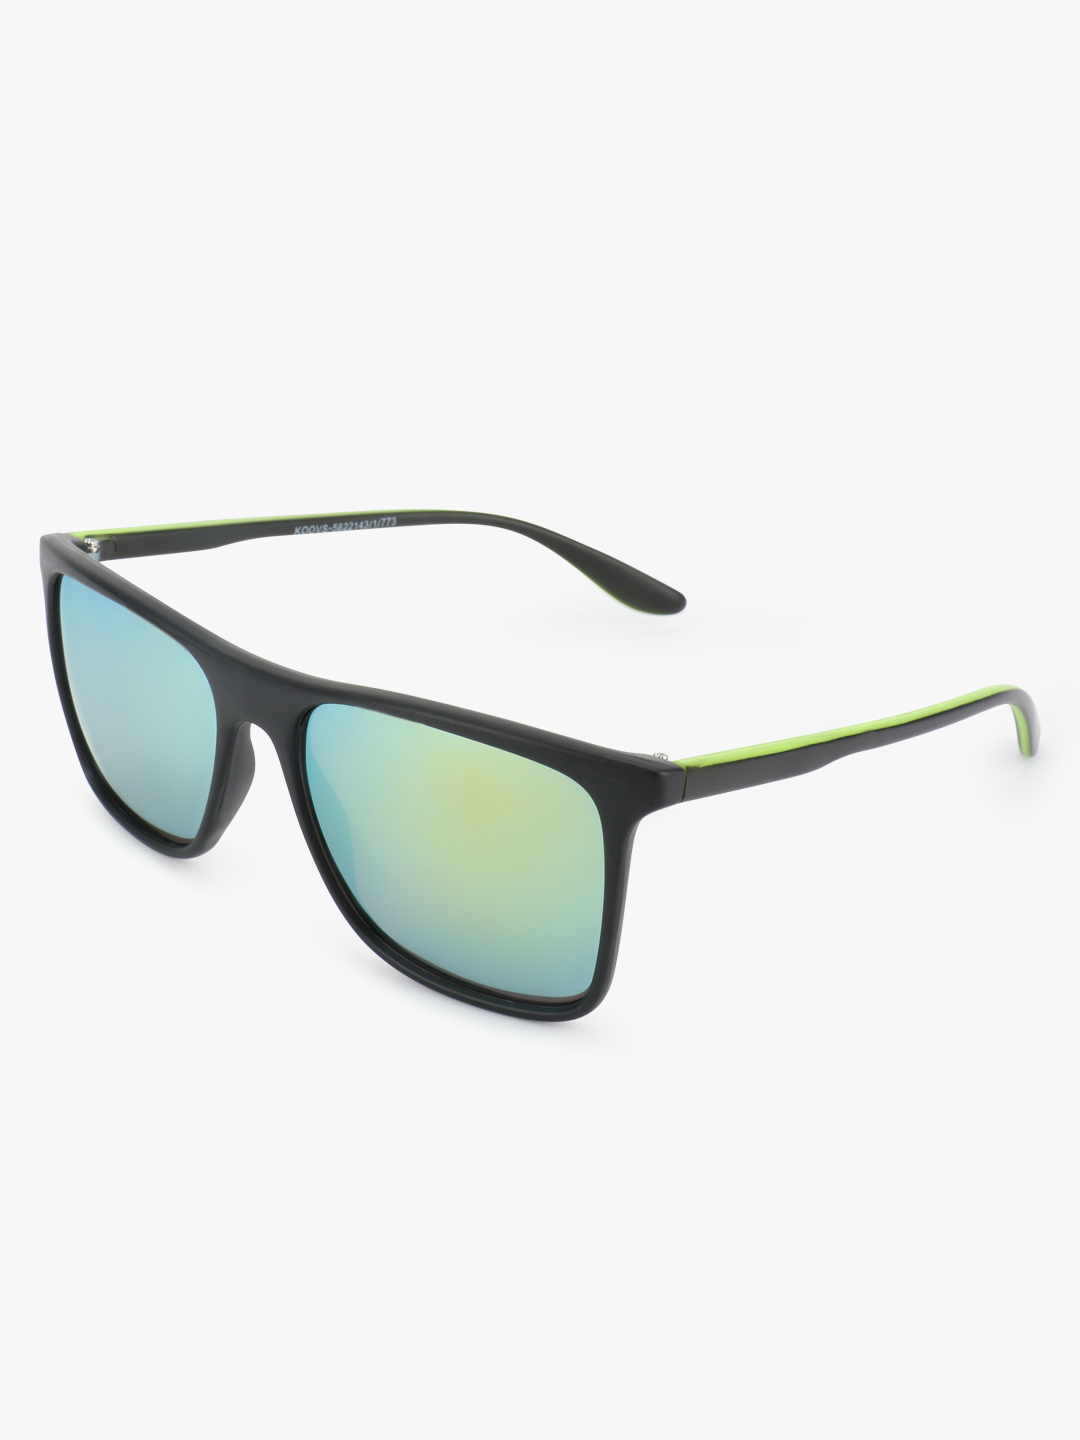 New Look Black Sports Flash Sunglasses 1